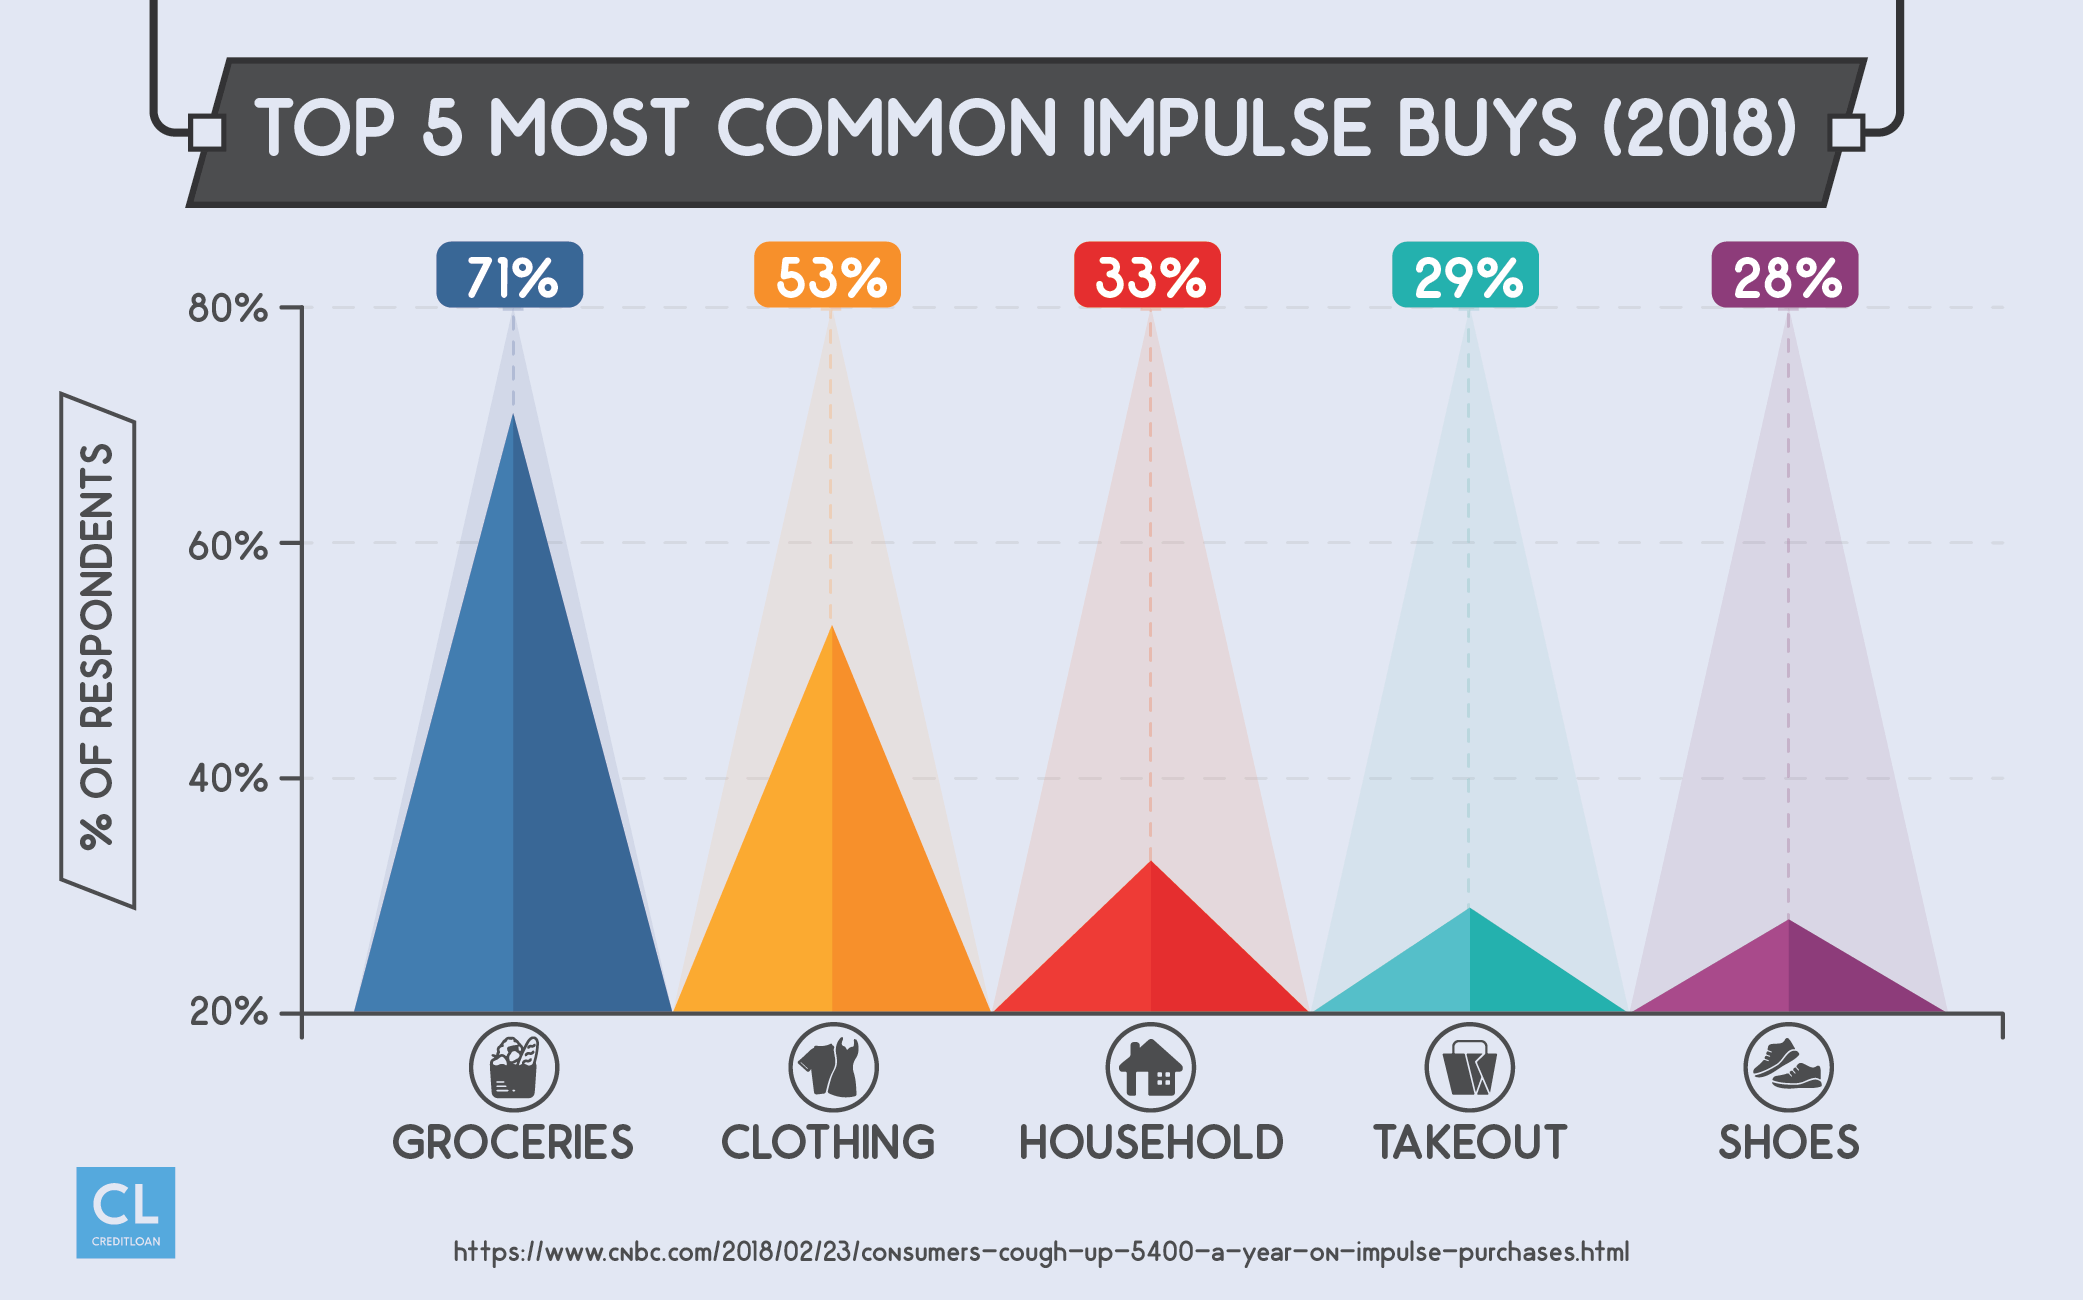 2018 Top 5 Most Common Impulse Buys